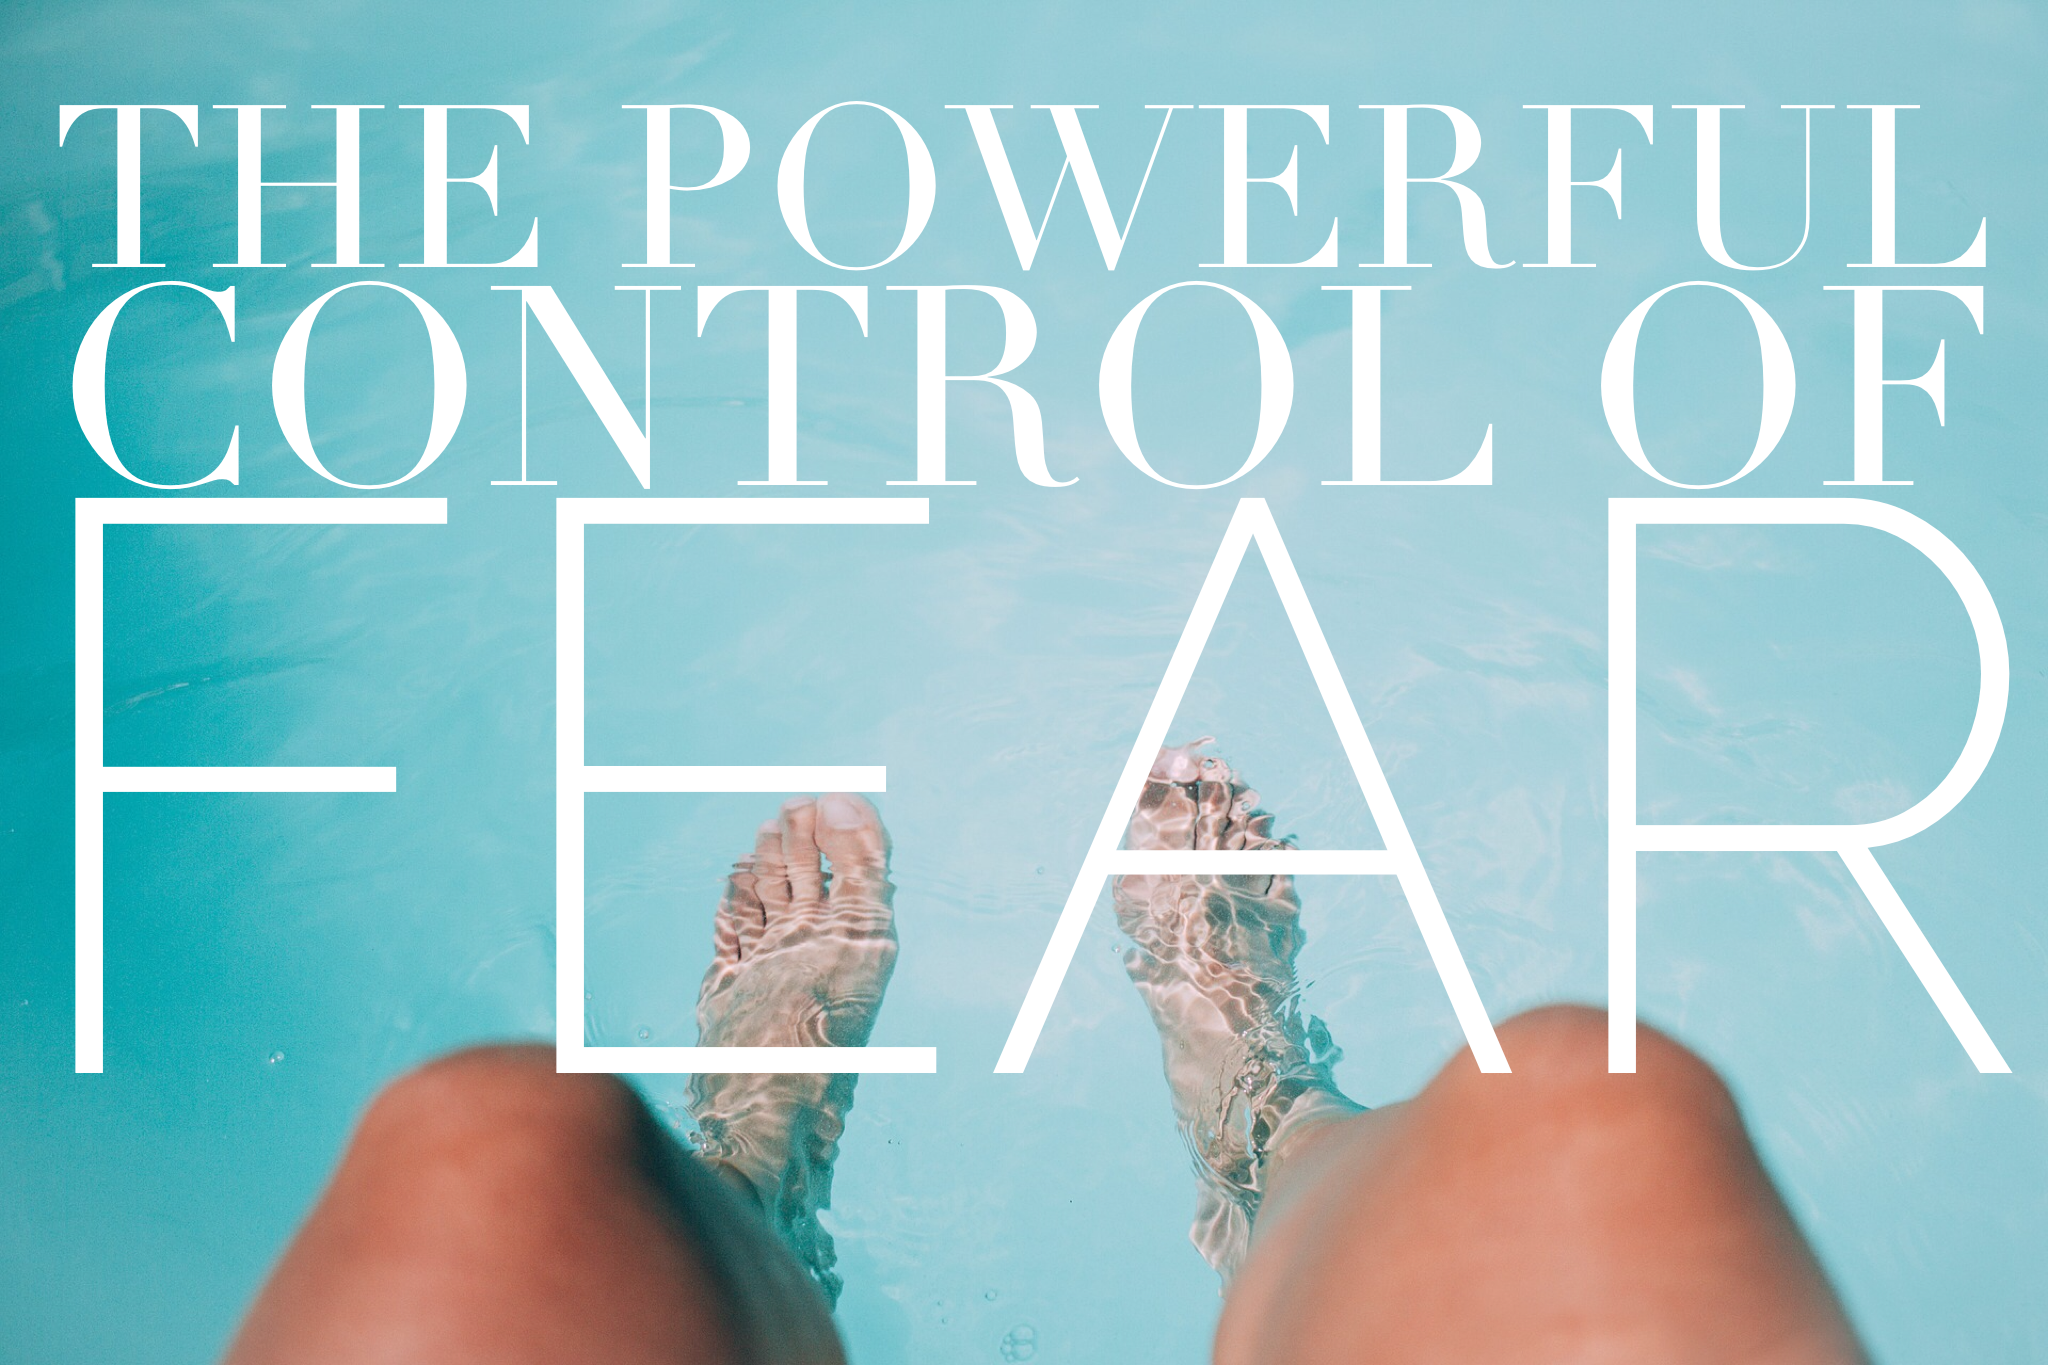 the powerful control of fear